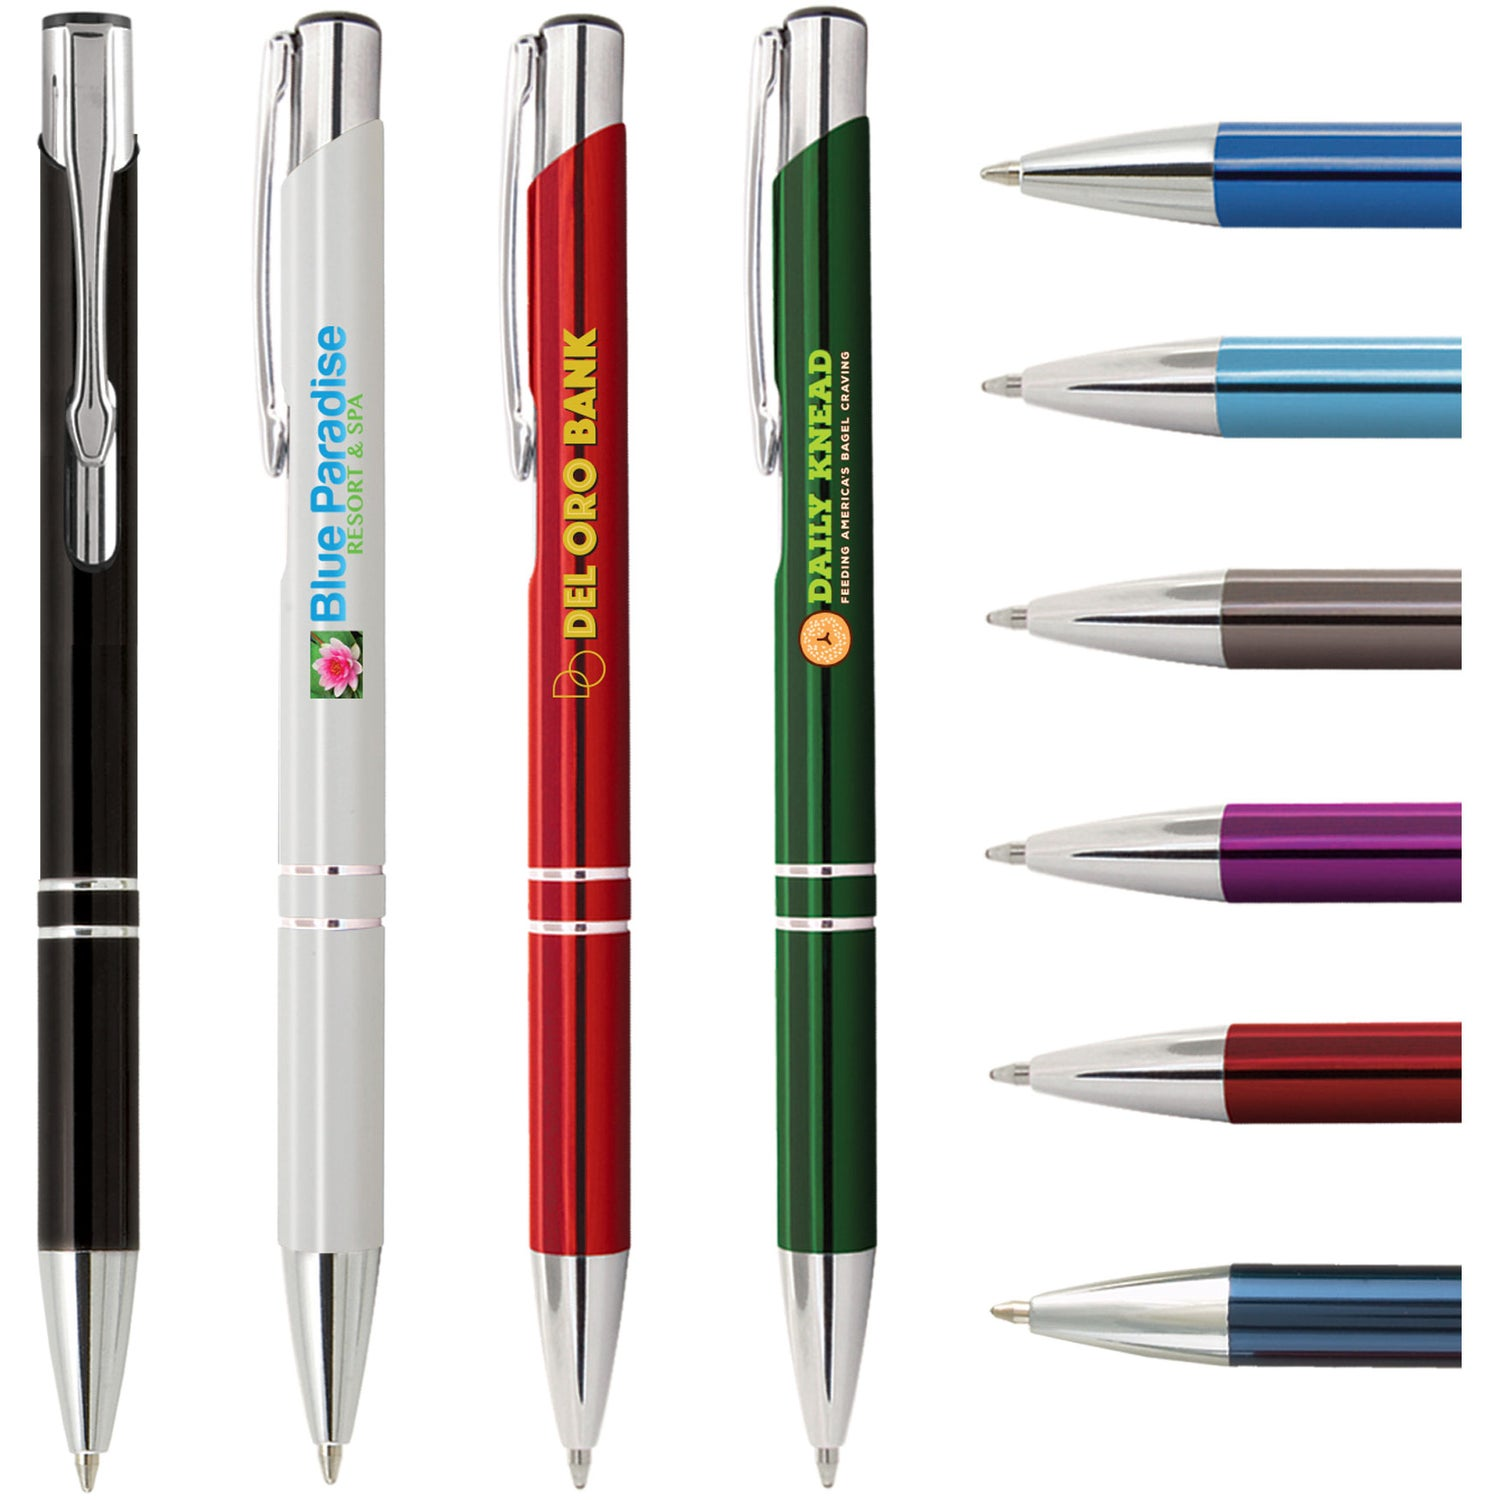 Tres-Chic ColorJet Pen